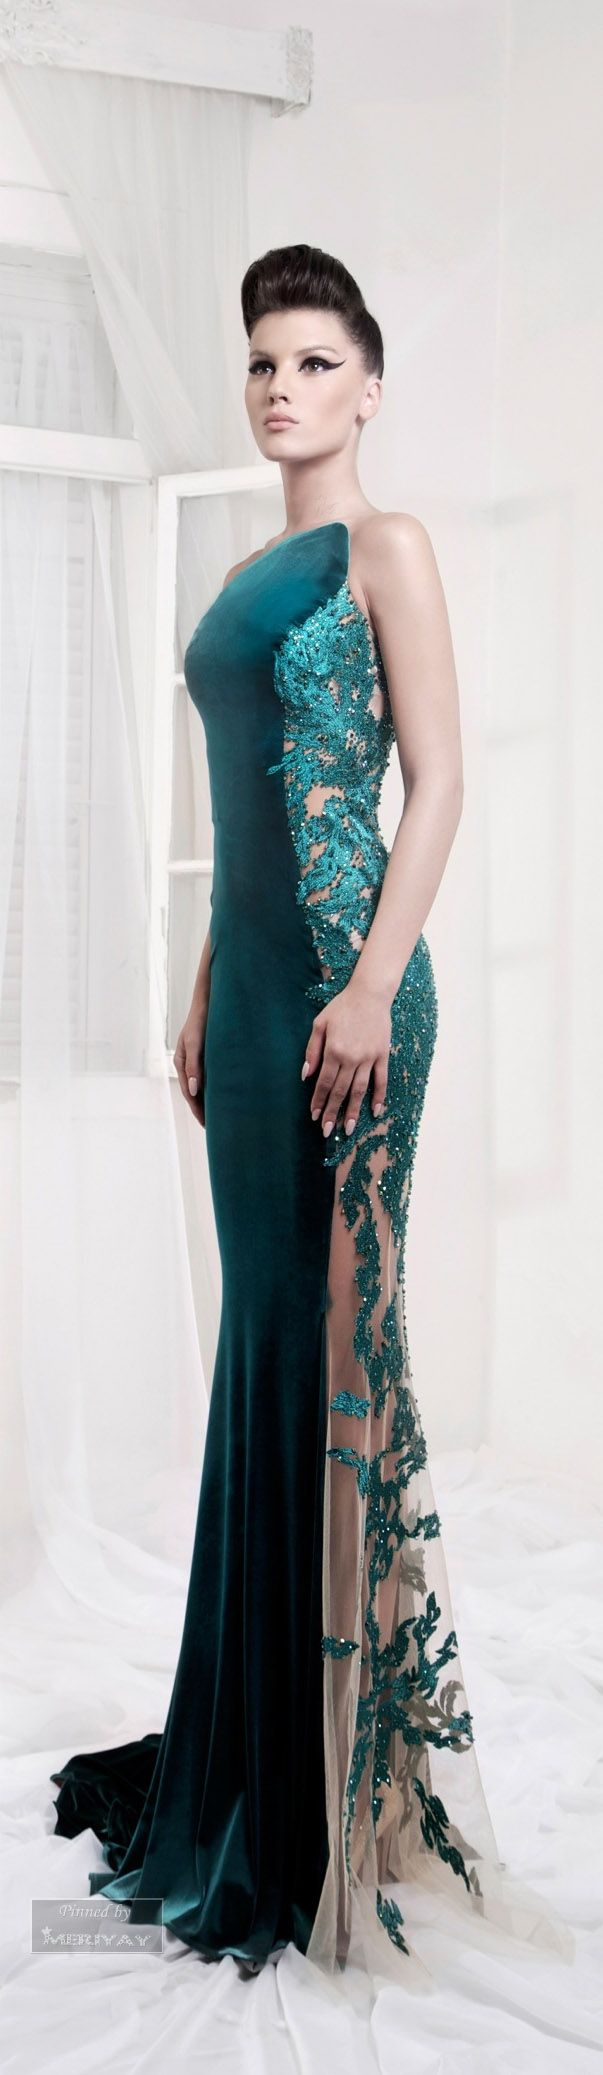 #eveninggowns - Beautiful Sheer sided evening gown with green beaded lace. We are custom dress makers from the US who can create an evening dress like this for you in any color or with ANY changes. Our design firm specializes in affordable custom evening dresses and replicas of haute couture pieces. Contact us for pricing and details no matter your size or location - http://www.dariuscordell.com/featured/custom-evening-dresses-couture-formal-ball-gowns/